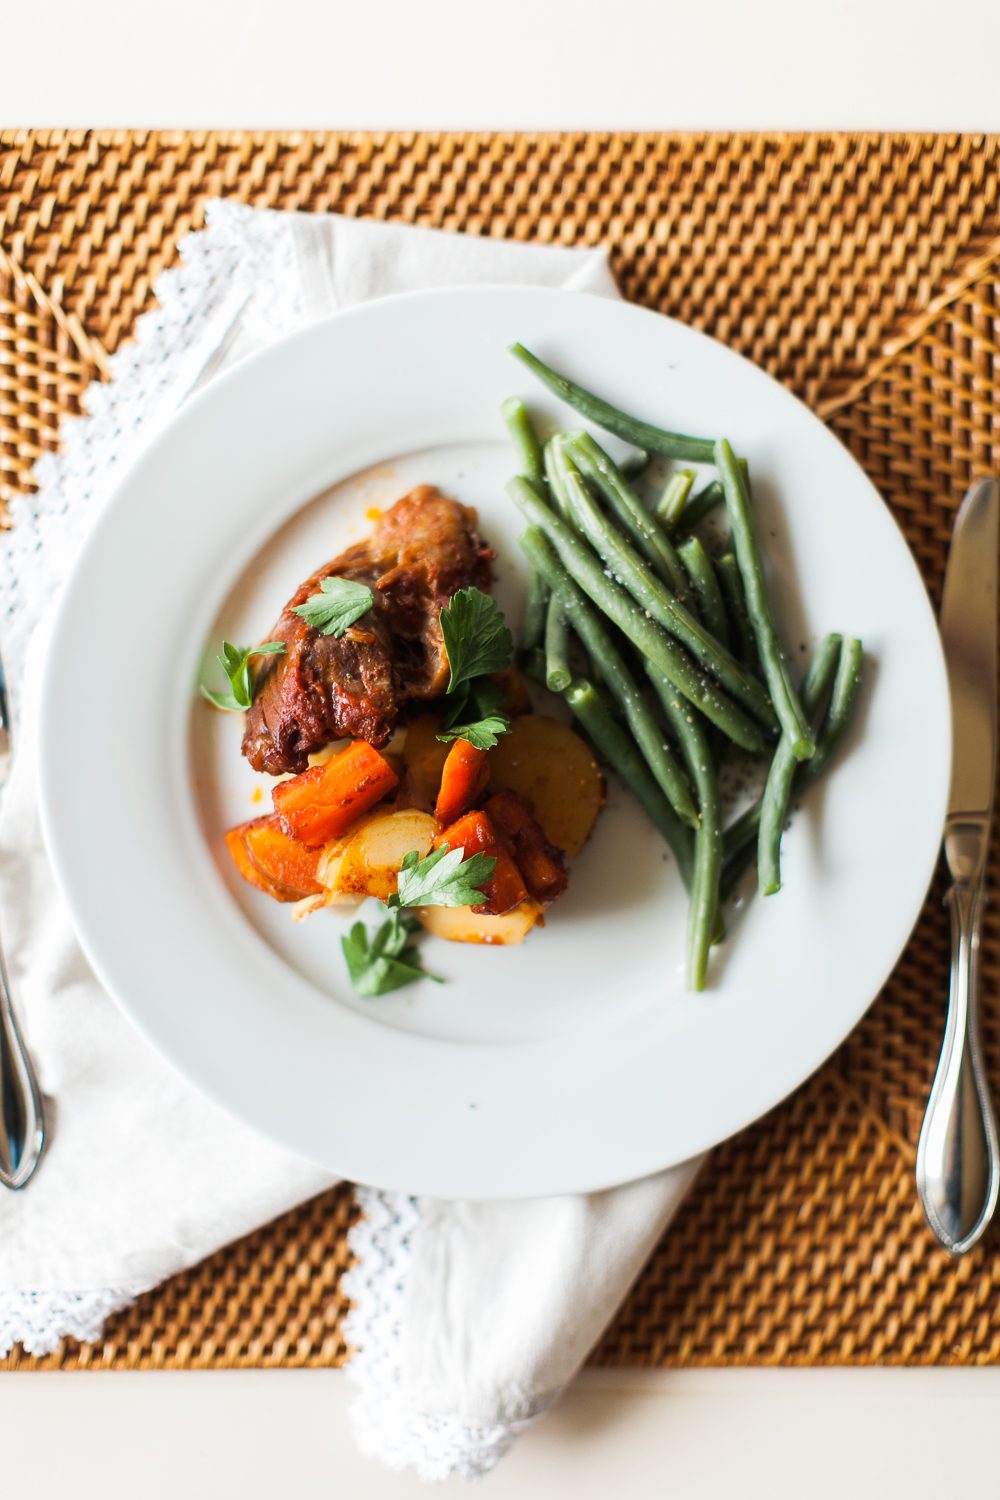 Making Family Dinners a Priority | Easy Pot Roast Dinner Recipe | Feast & Dwell